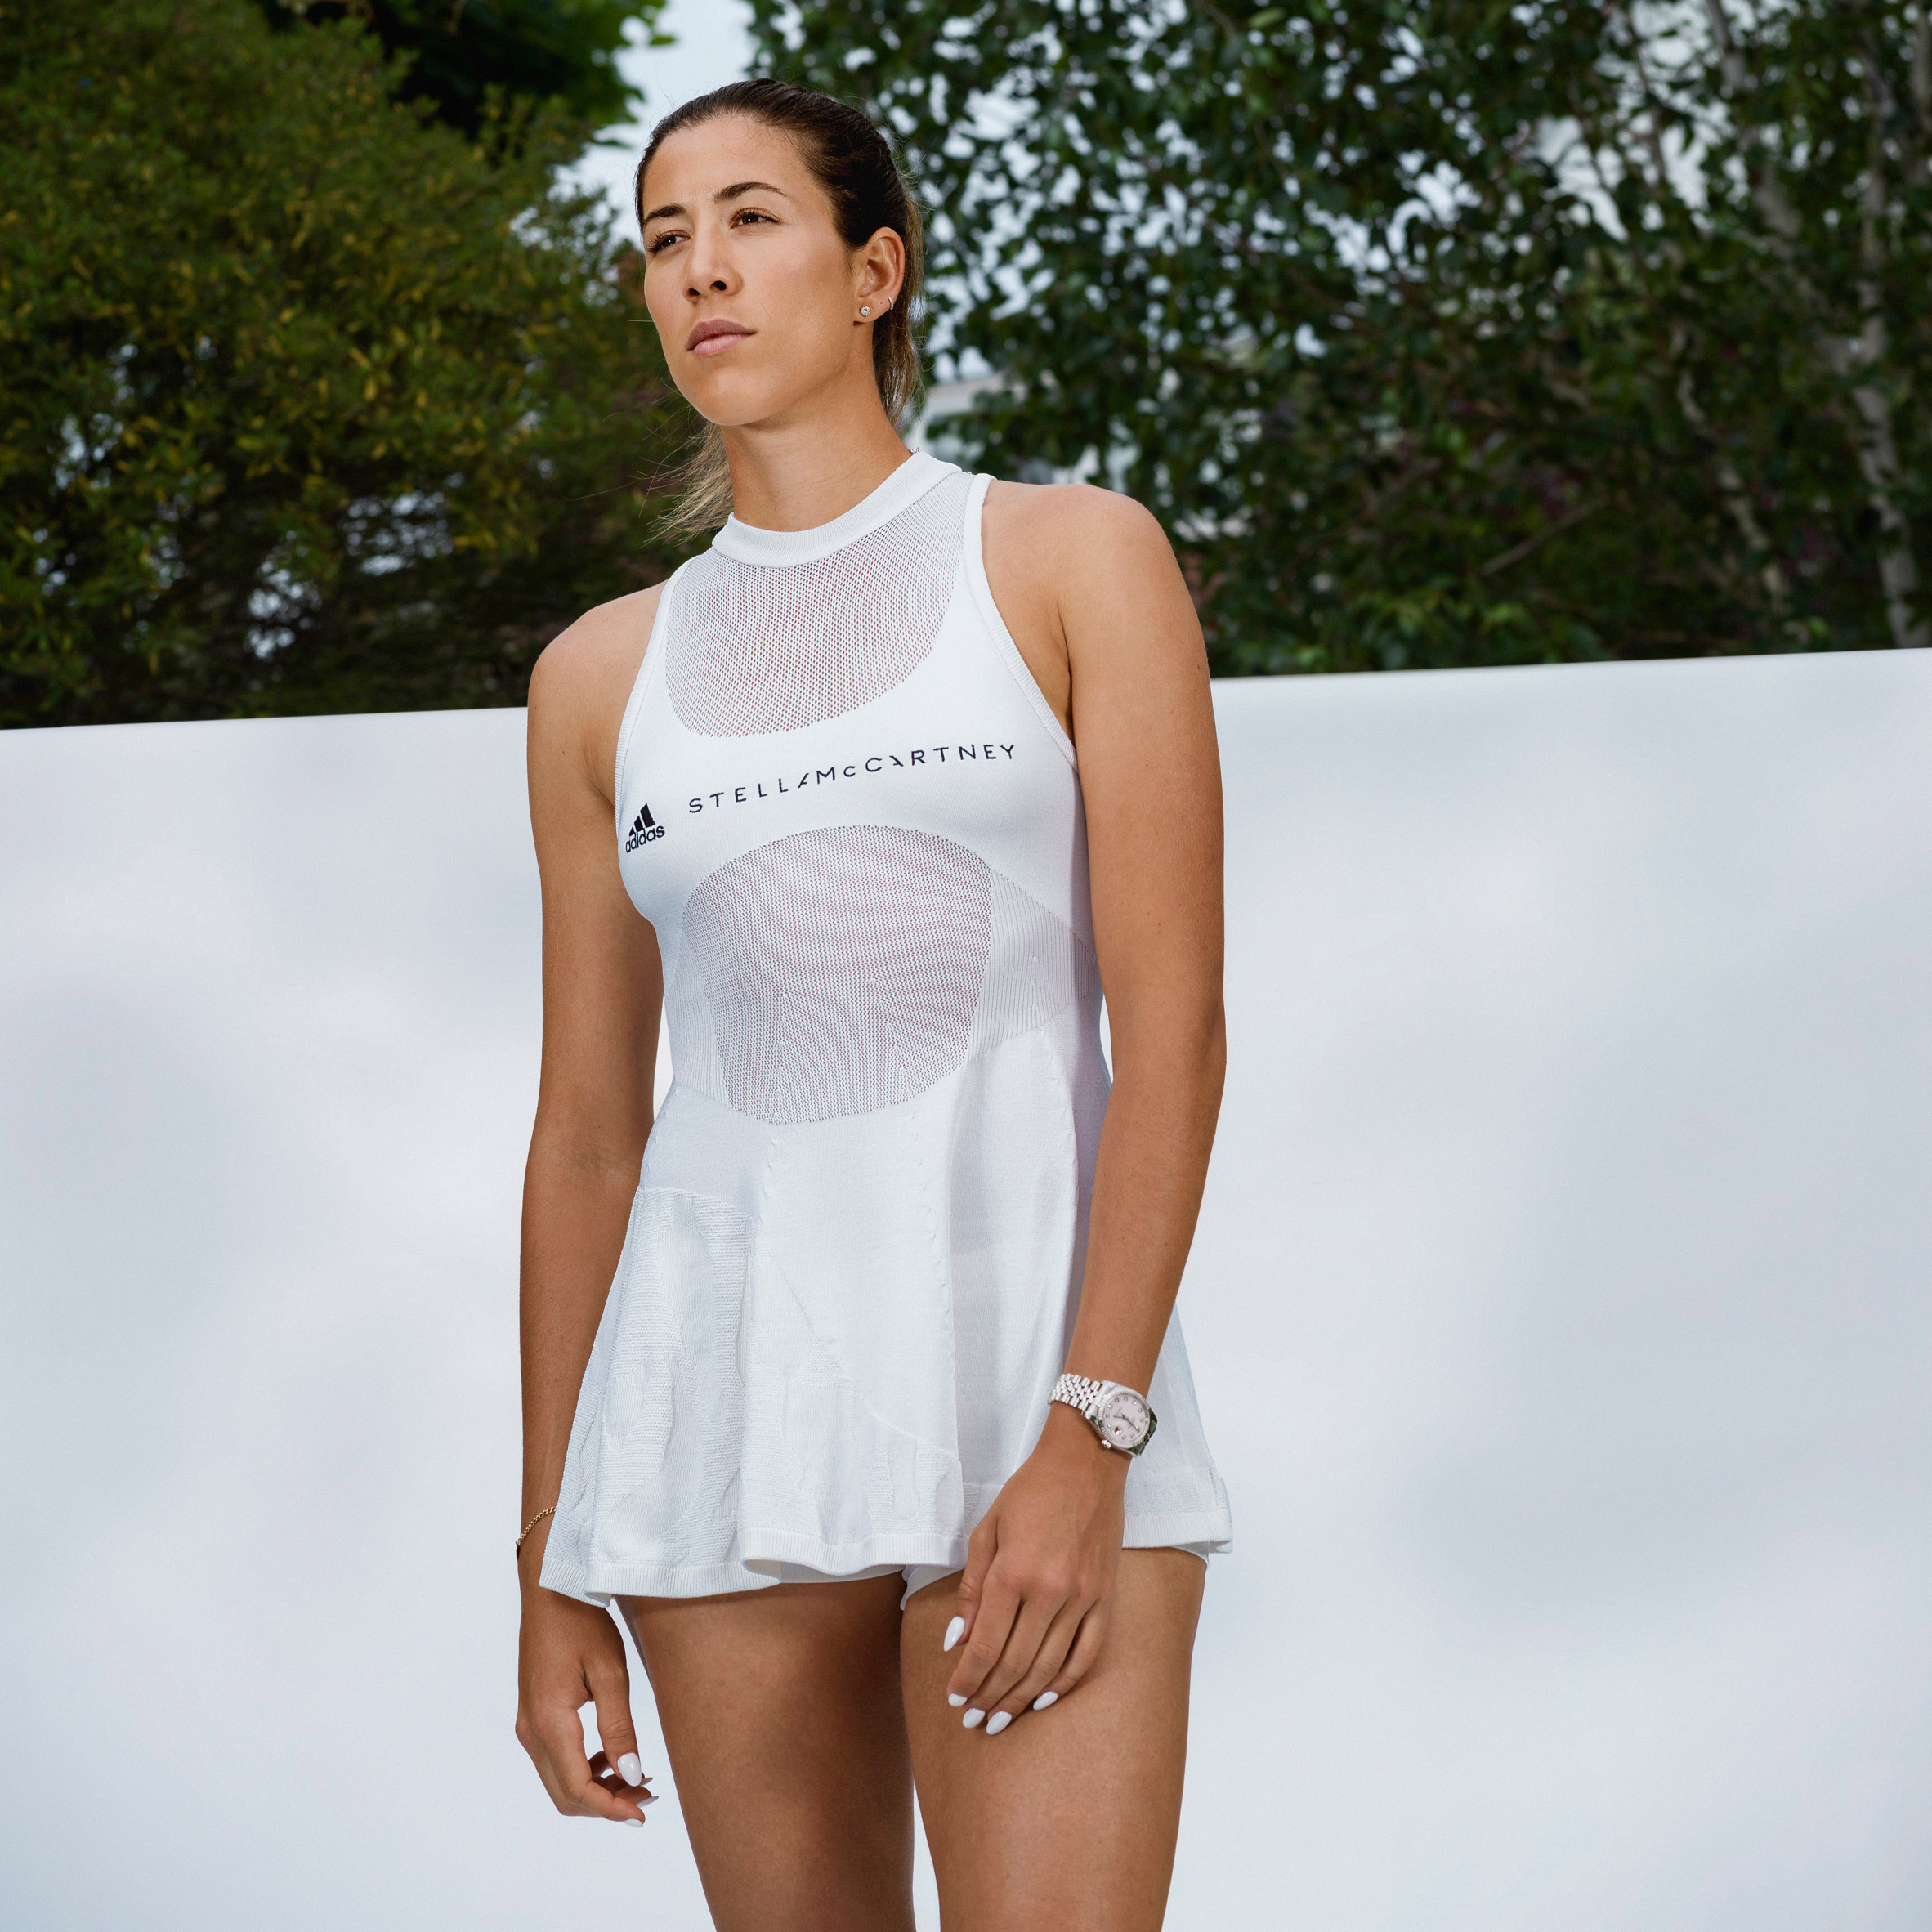 Lab-grown spider silk Biofabric Tennis Dress by Adidas x Stella ...